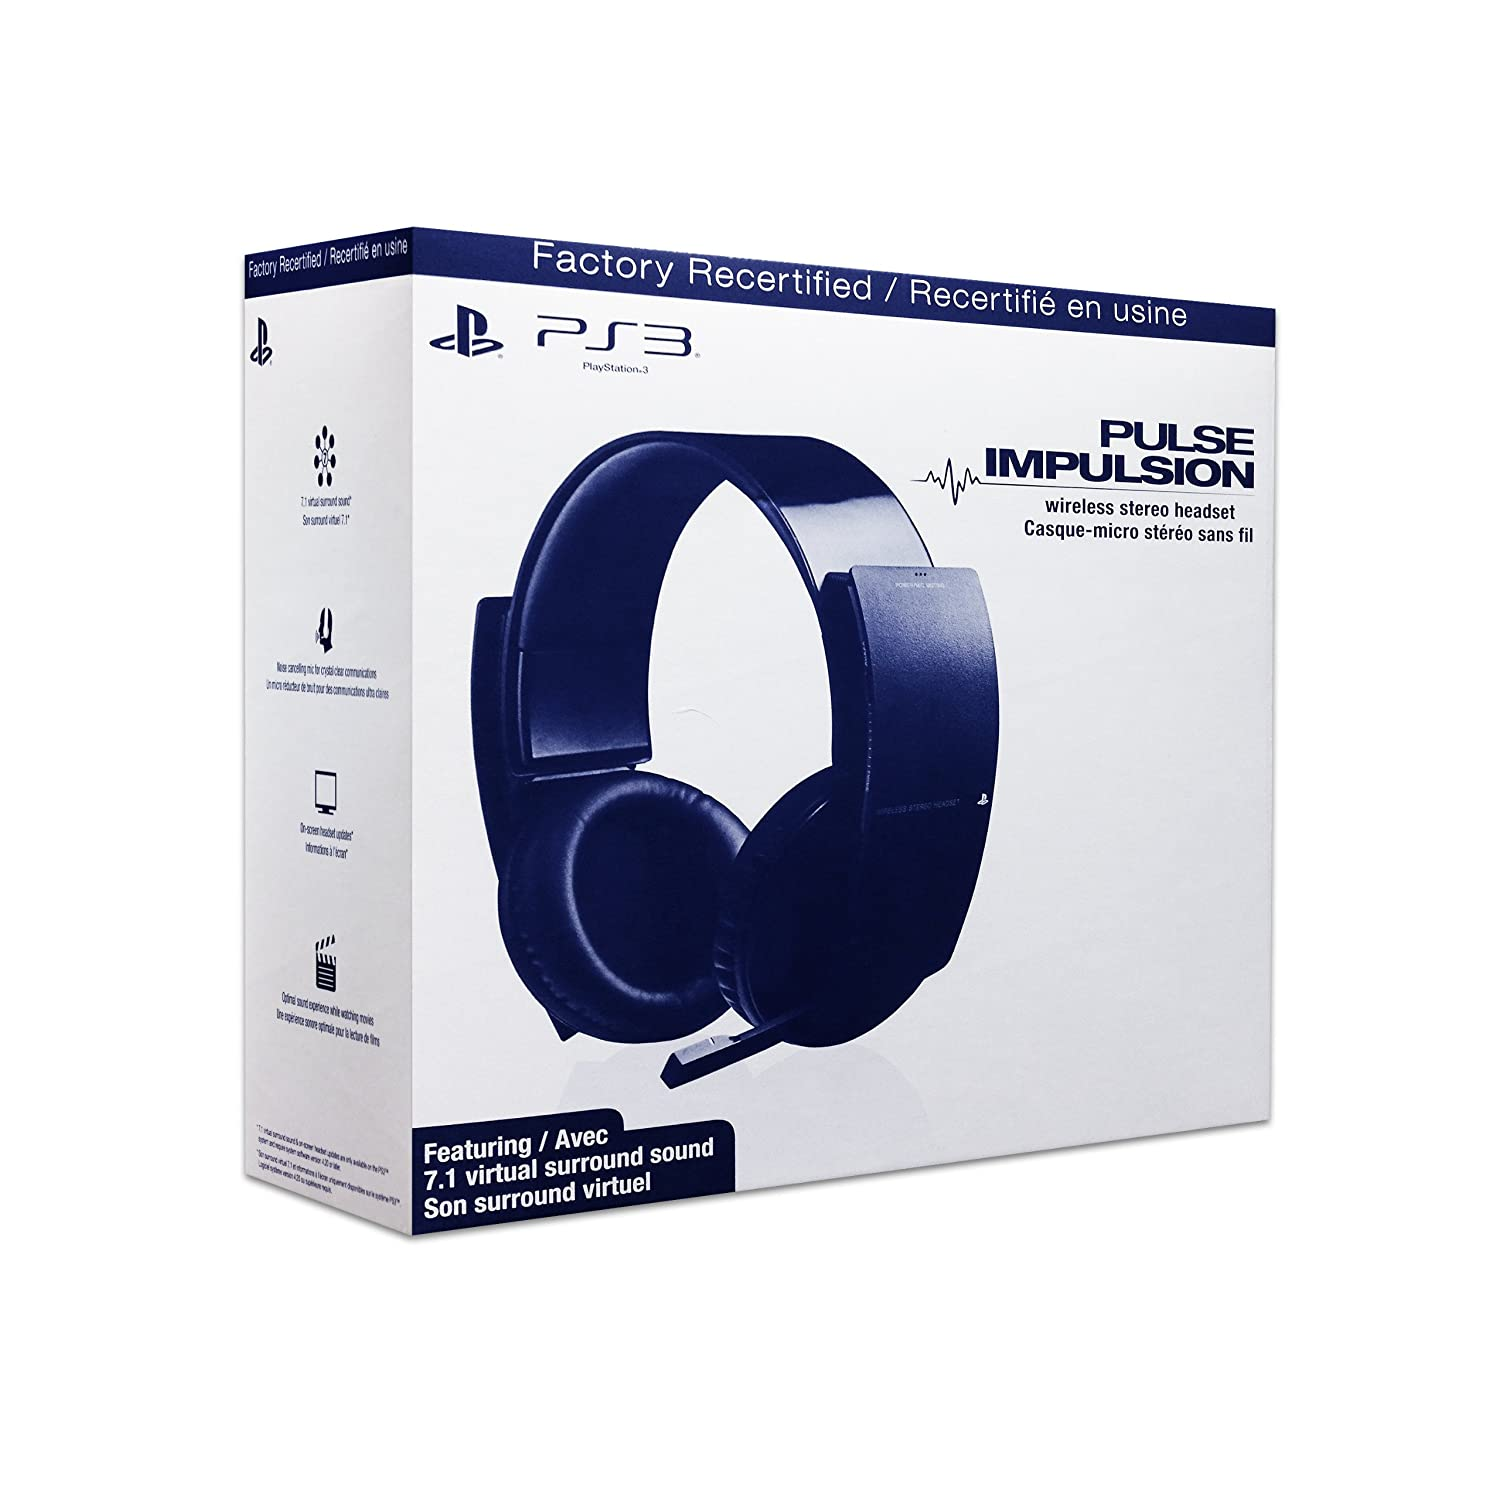 PS3 Wireless Stereo Headset – Factory Recertified